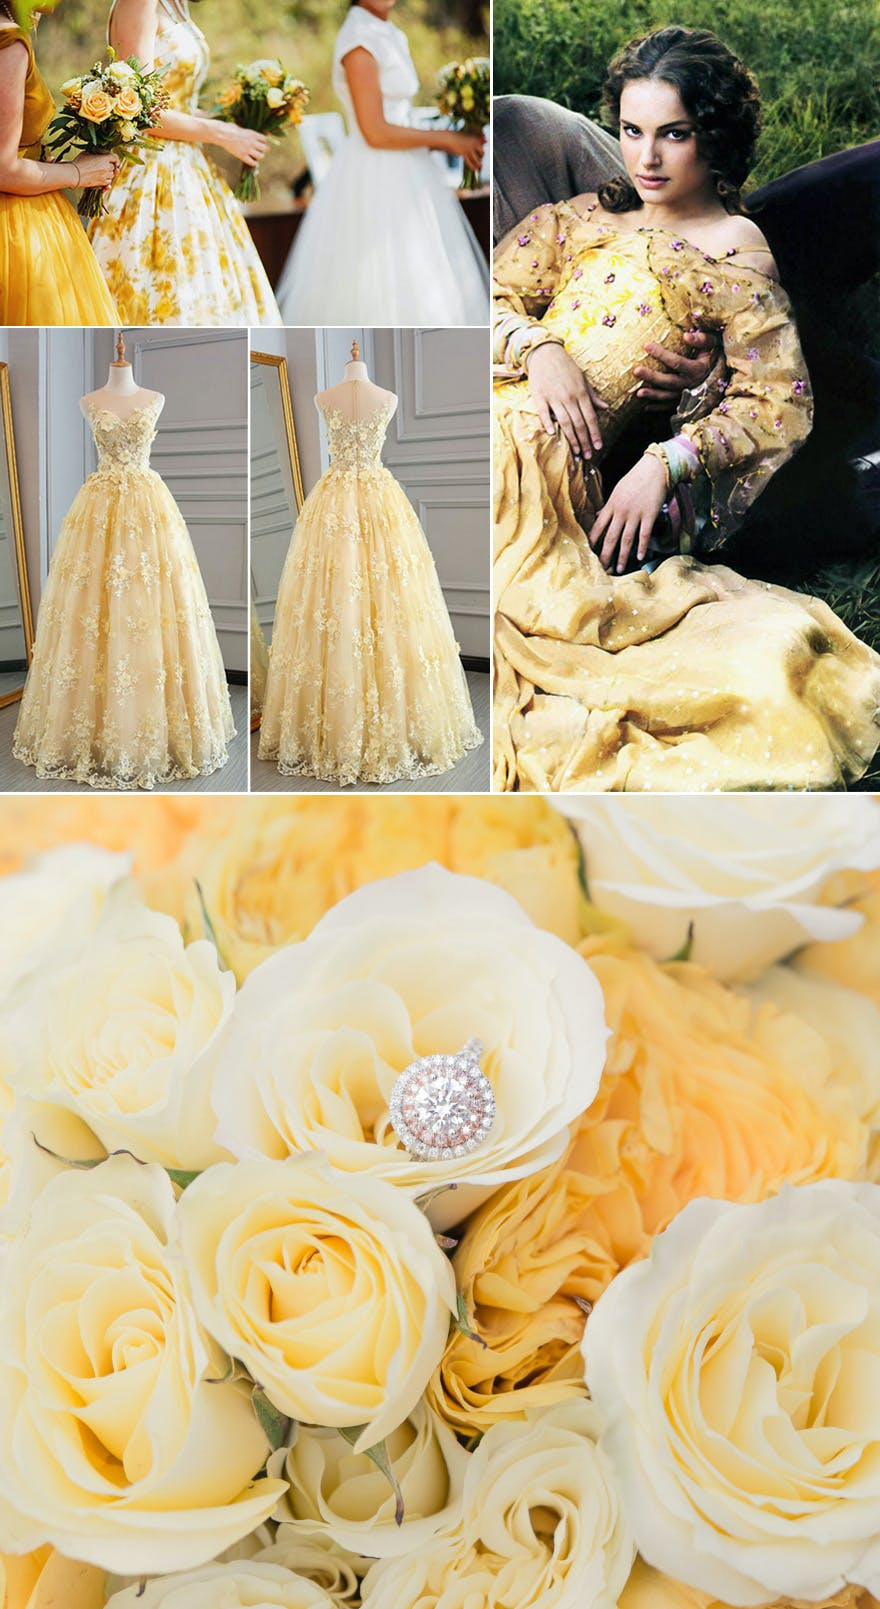 Padme Yellow Picnic Dress - Wedding Ideas and Inspiration | Confetti.co.uk